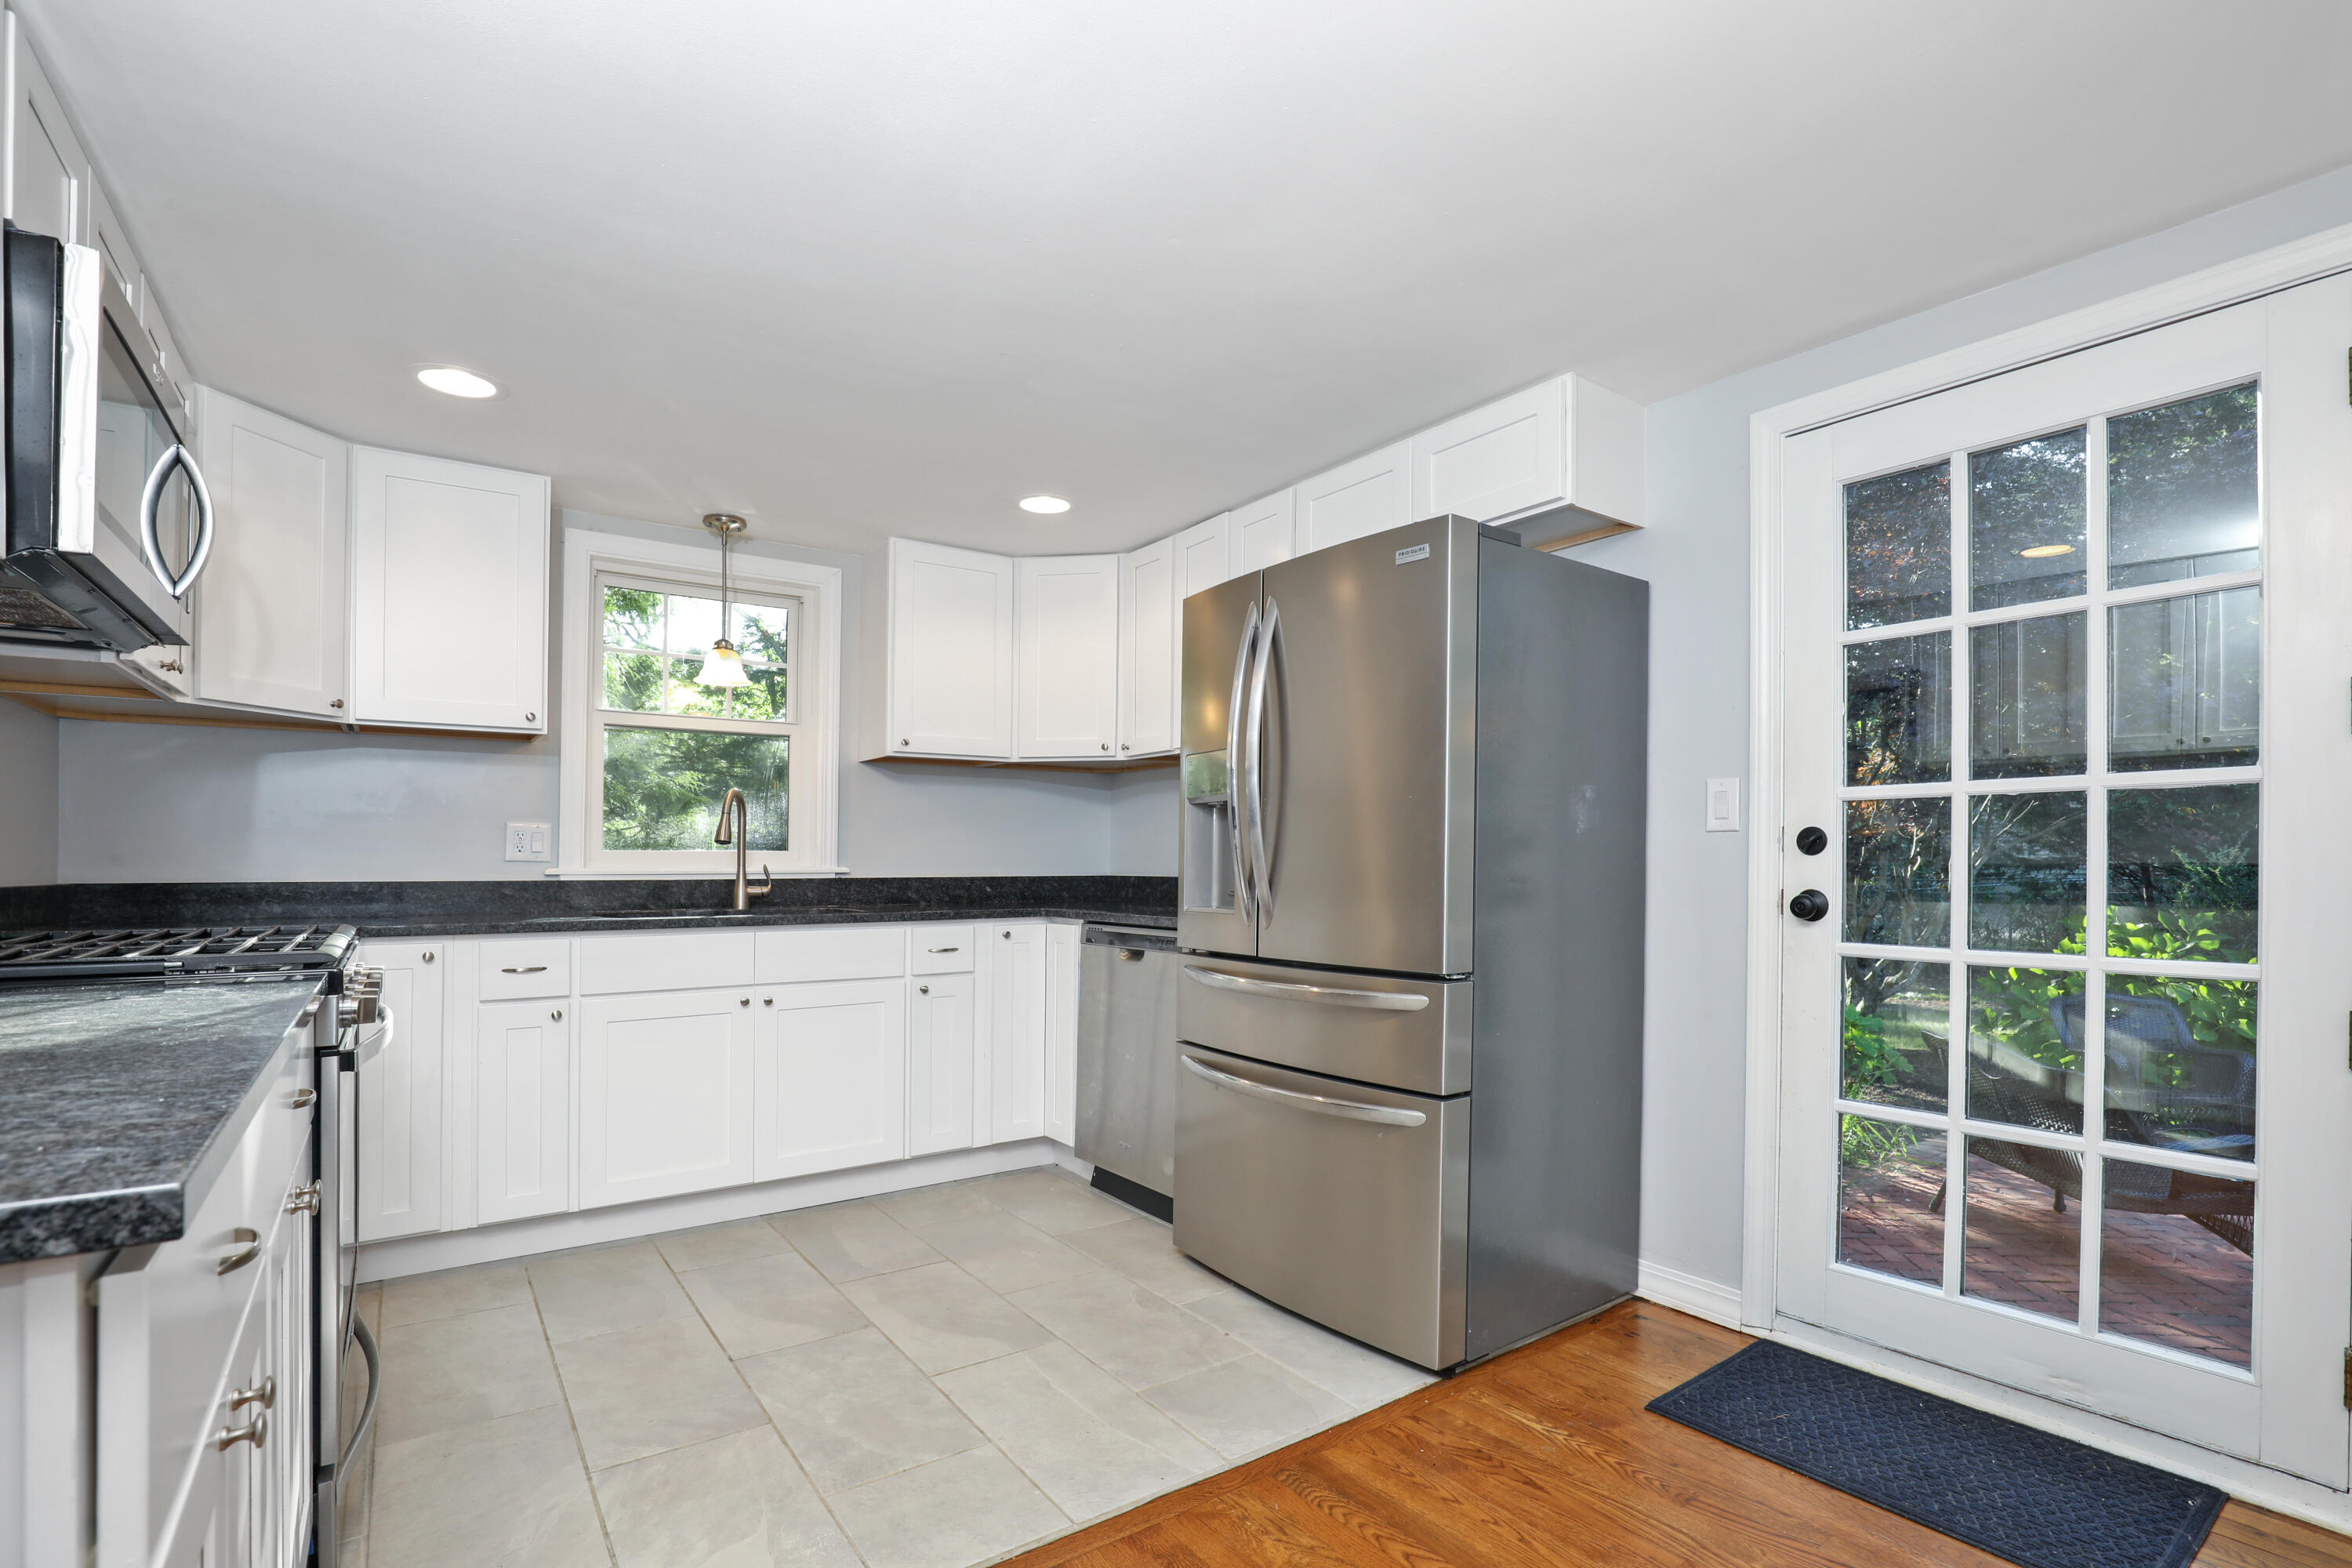 9 Grouse Lane, Hyannis, MA photo 8